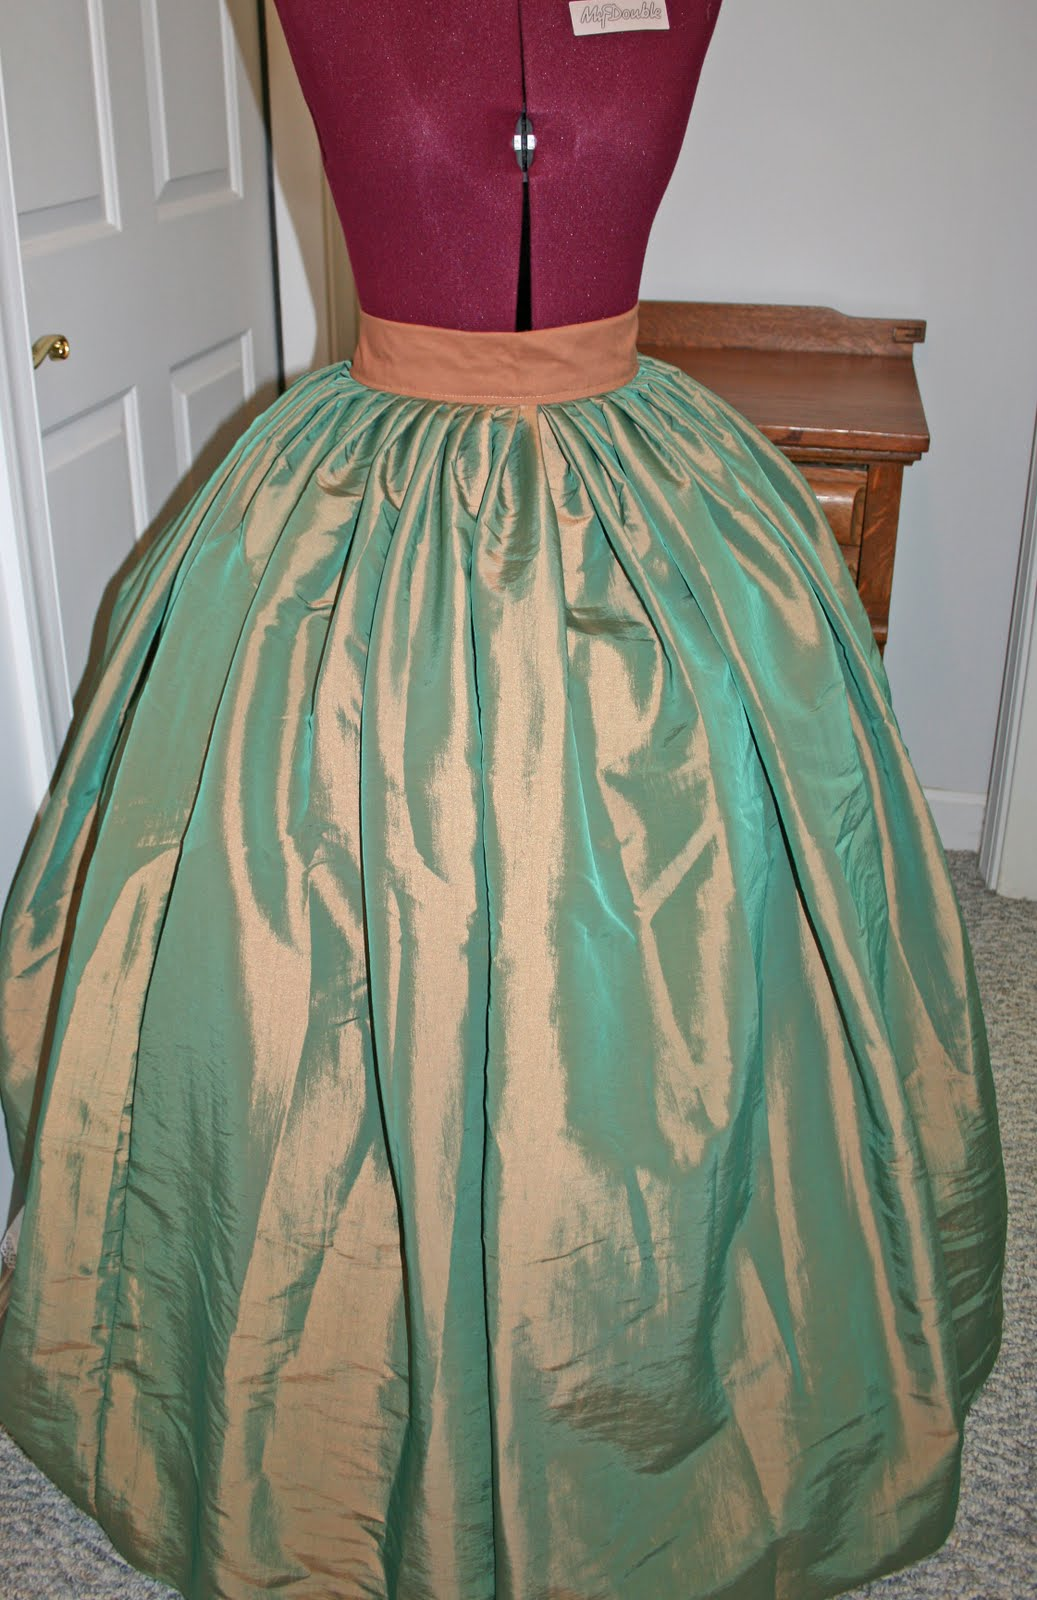 Southron Creations: How to Pleat An 1860s Skirt